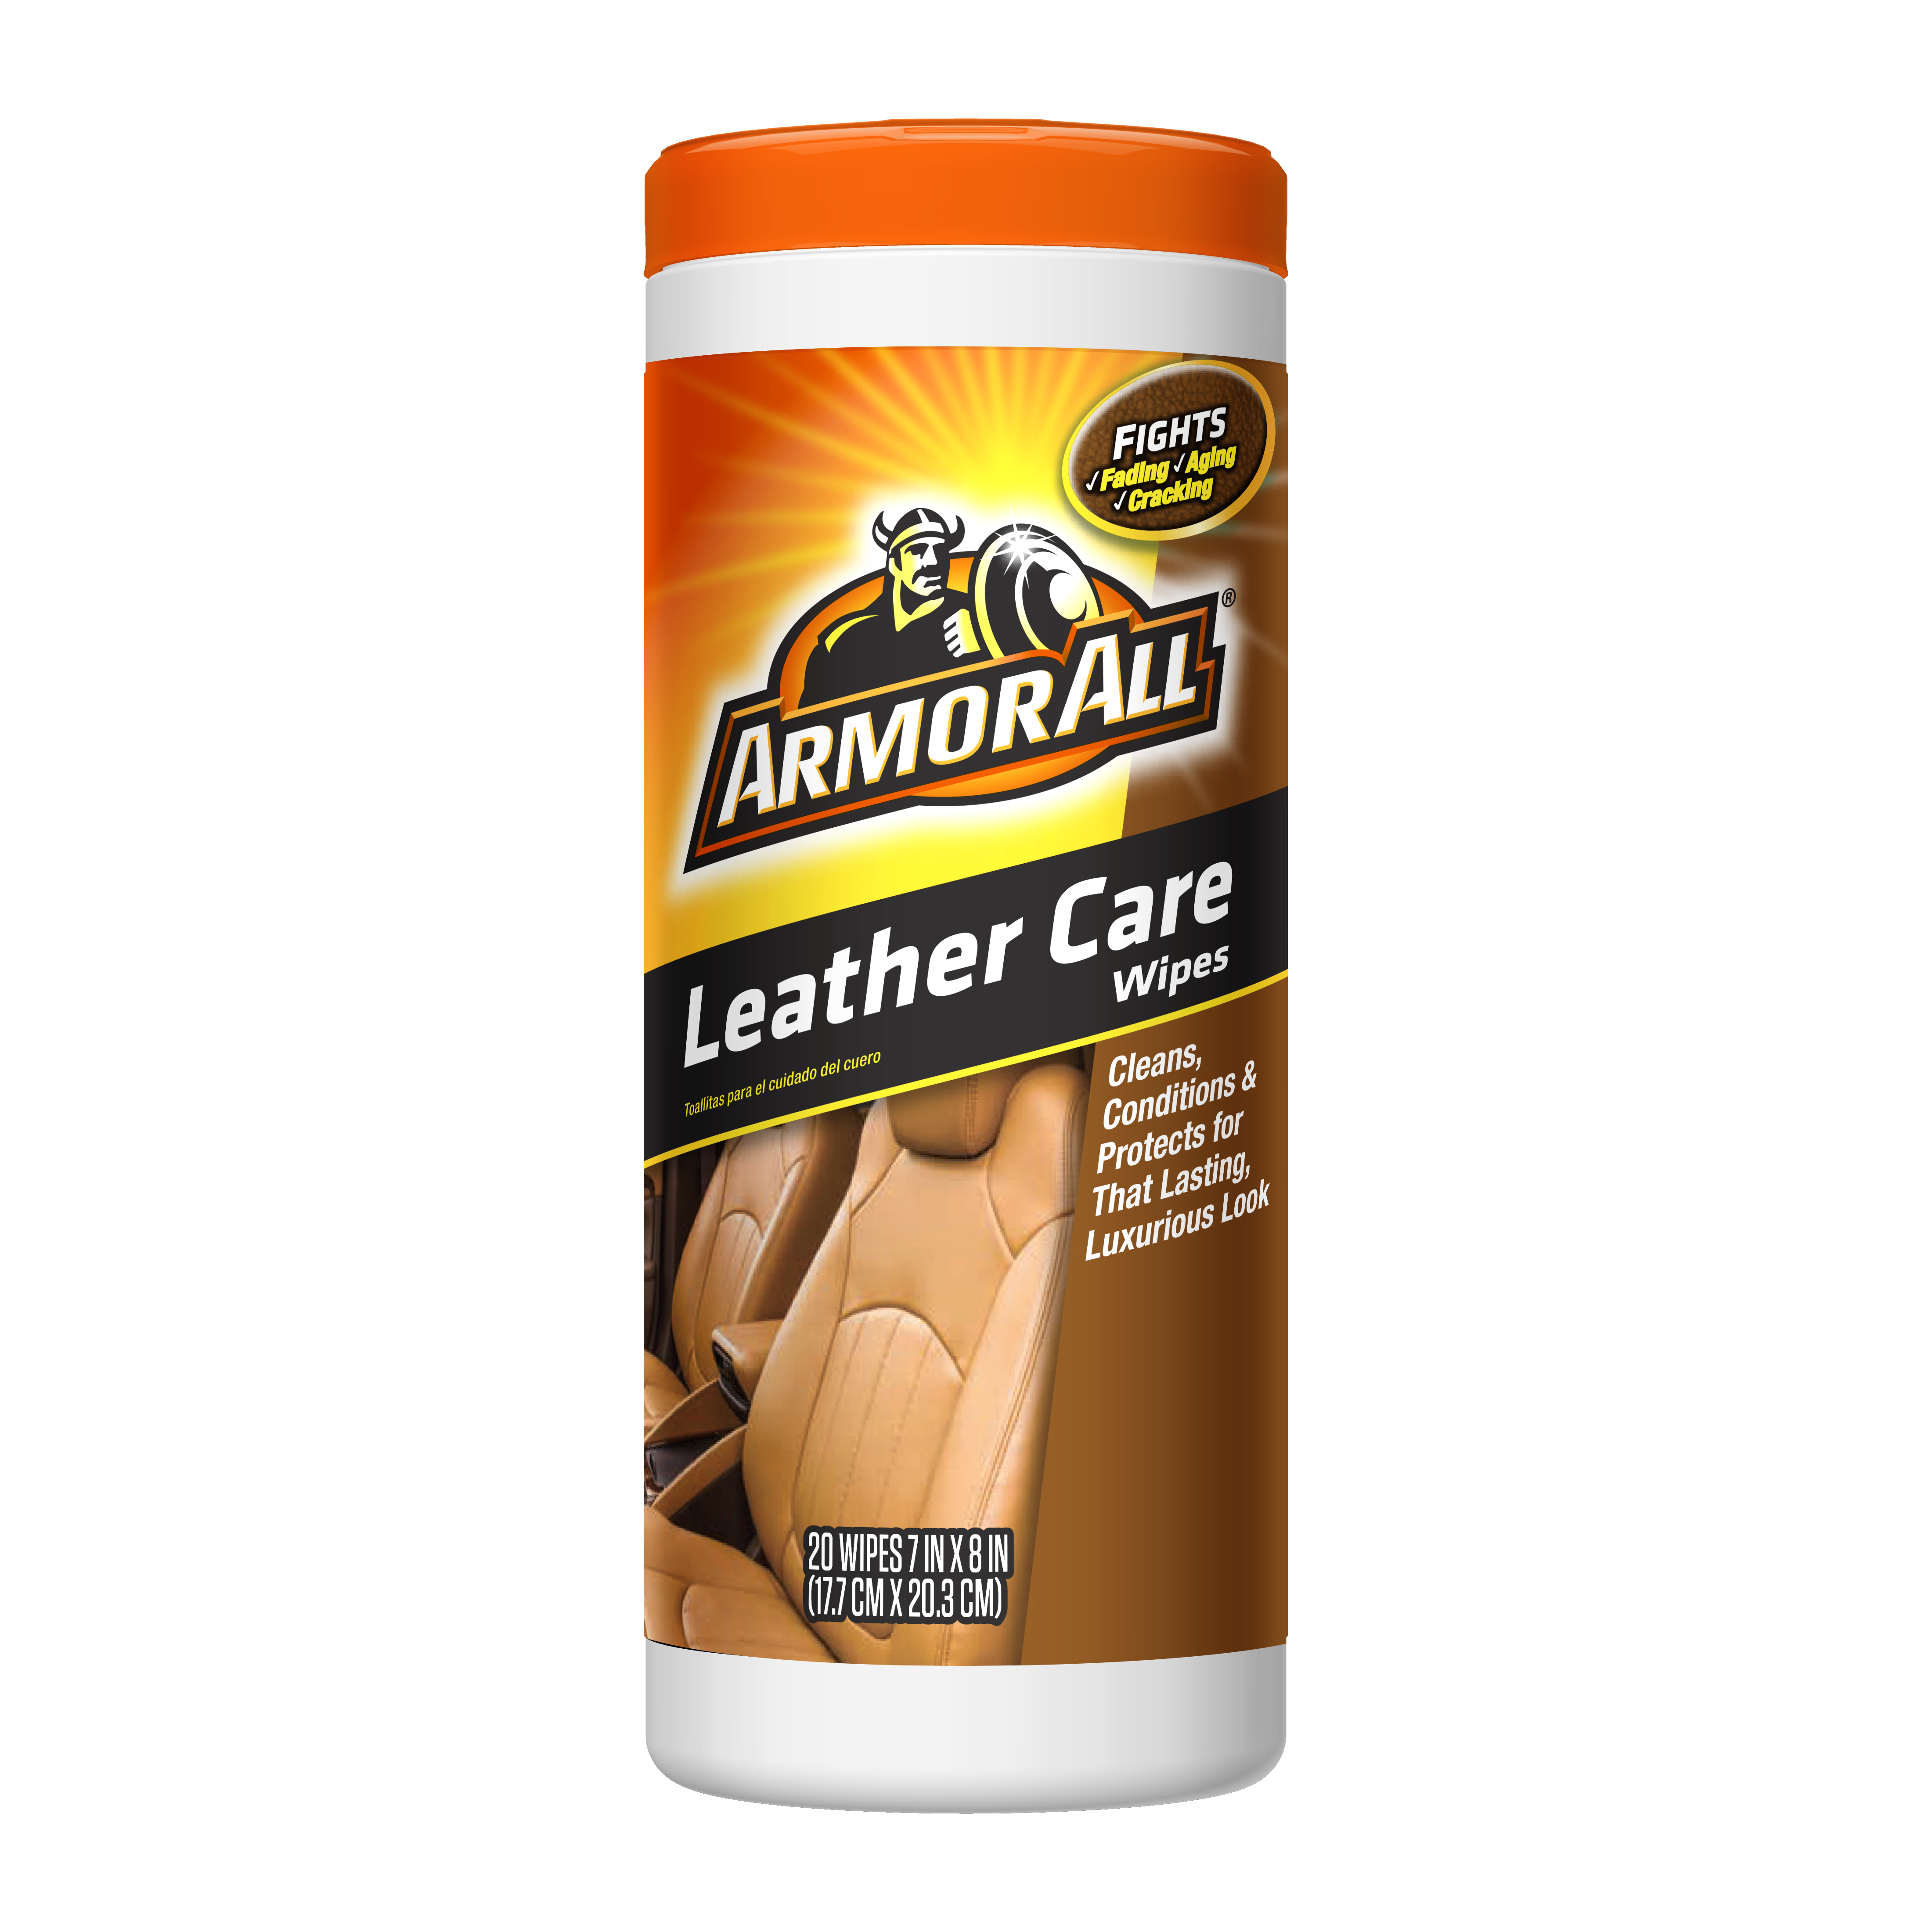 Armor All Leather Wipes - Cleans, Conditions & Protects (30 count)